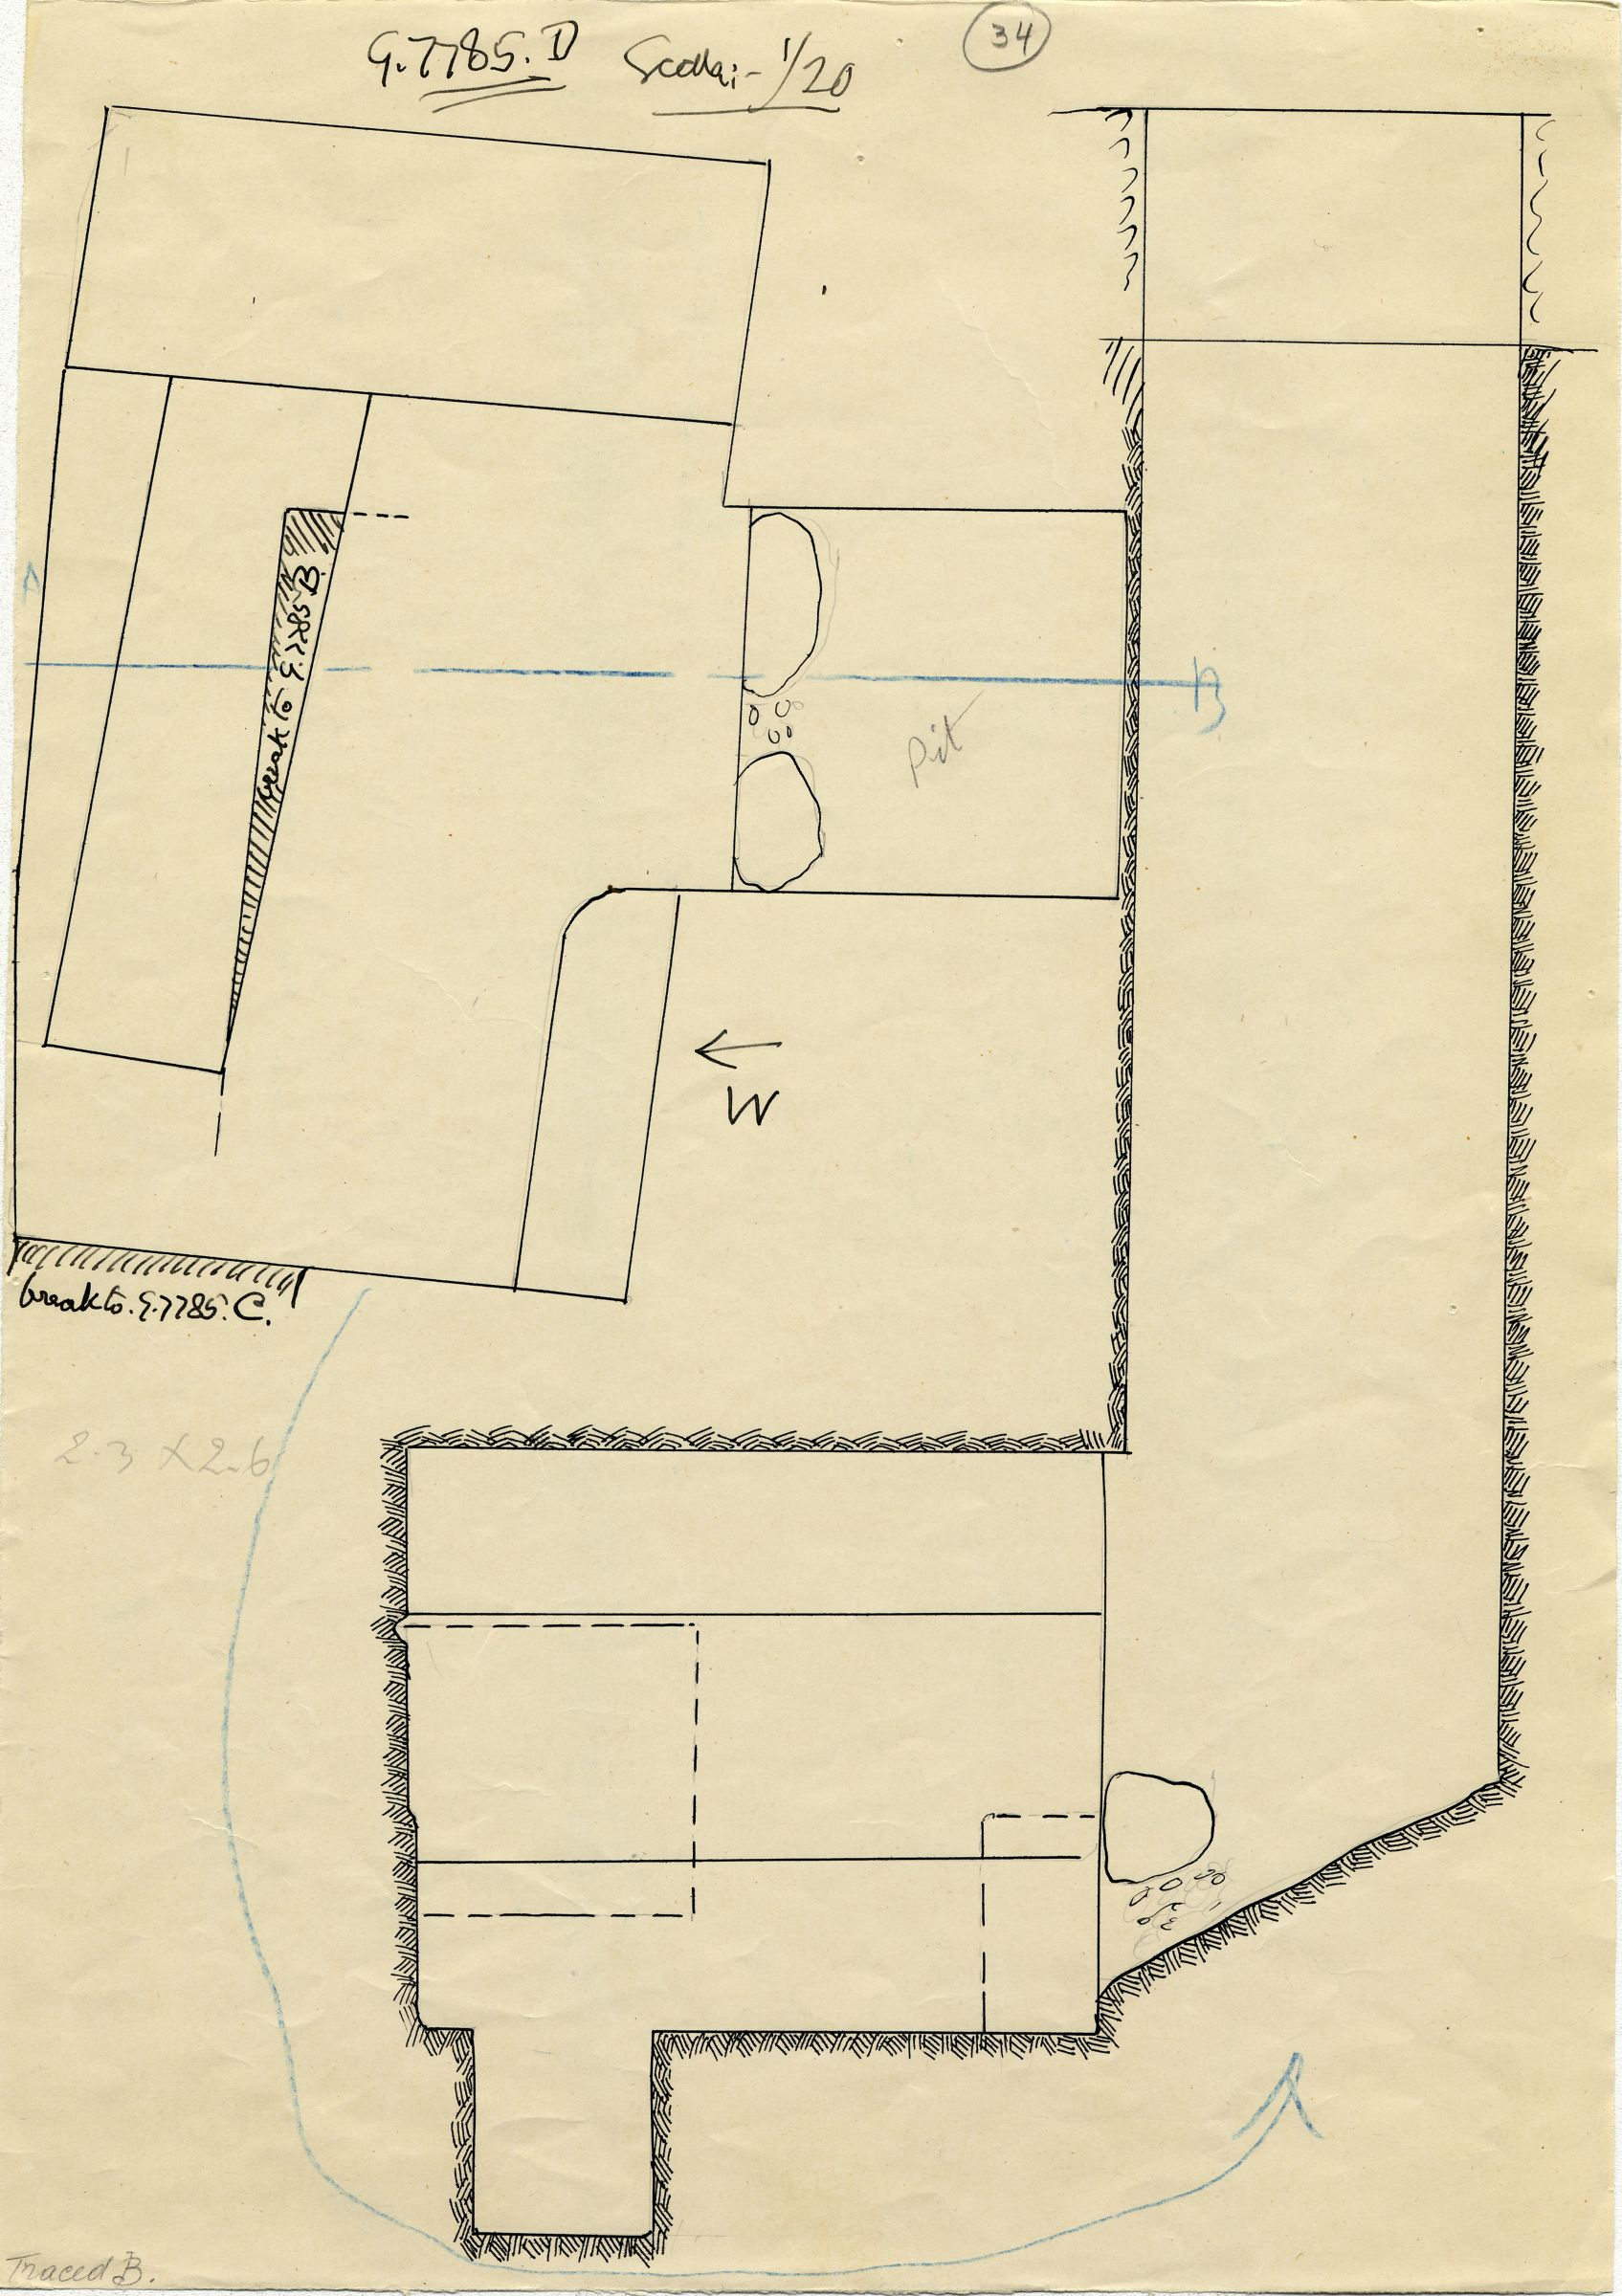 Maps and plans: G 7785, Shaft D